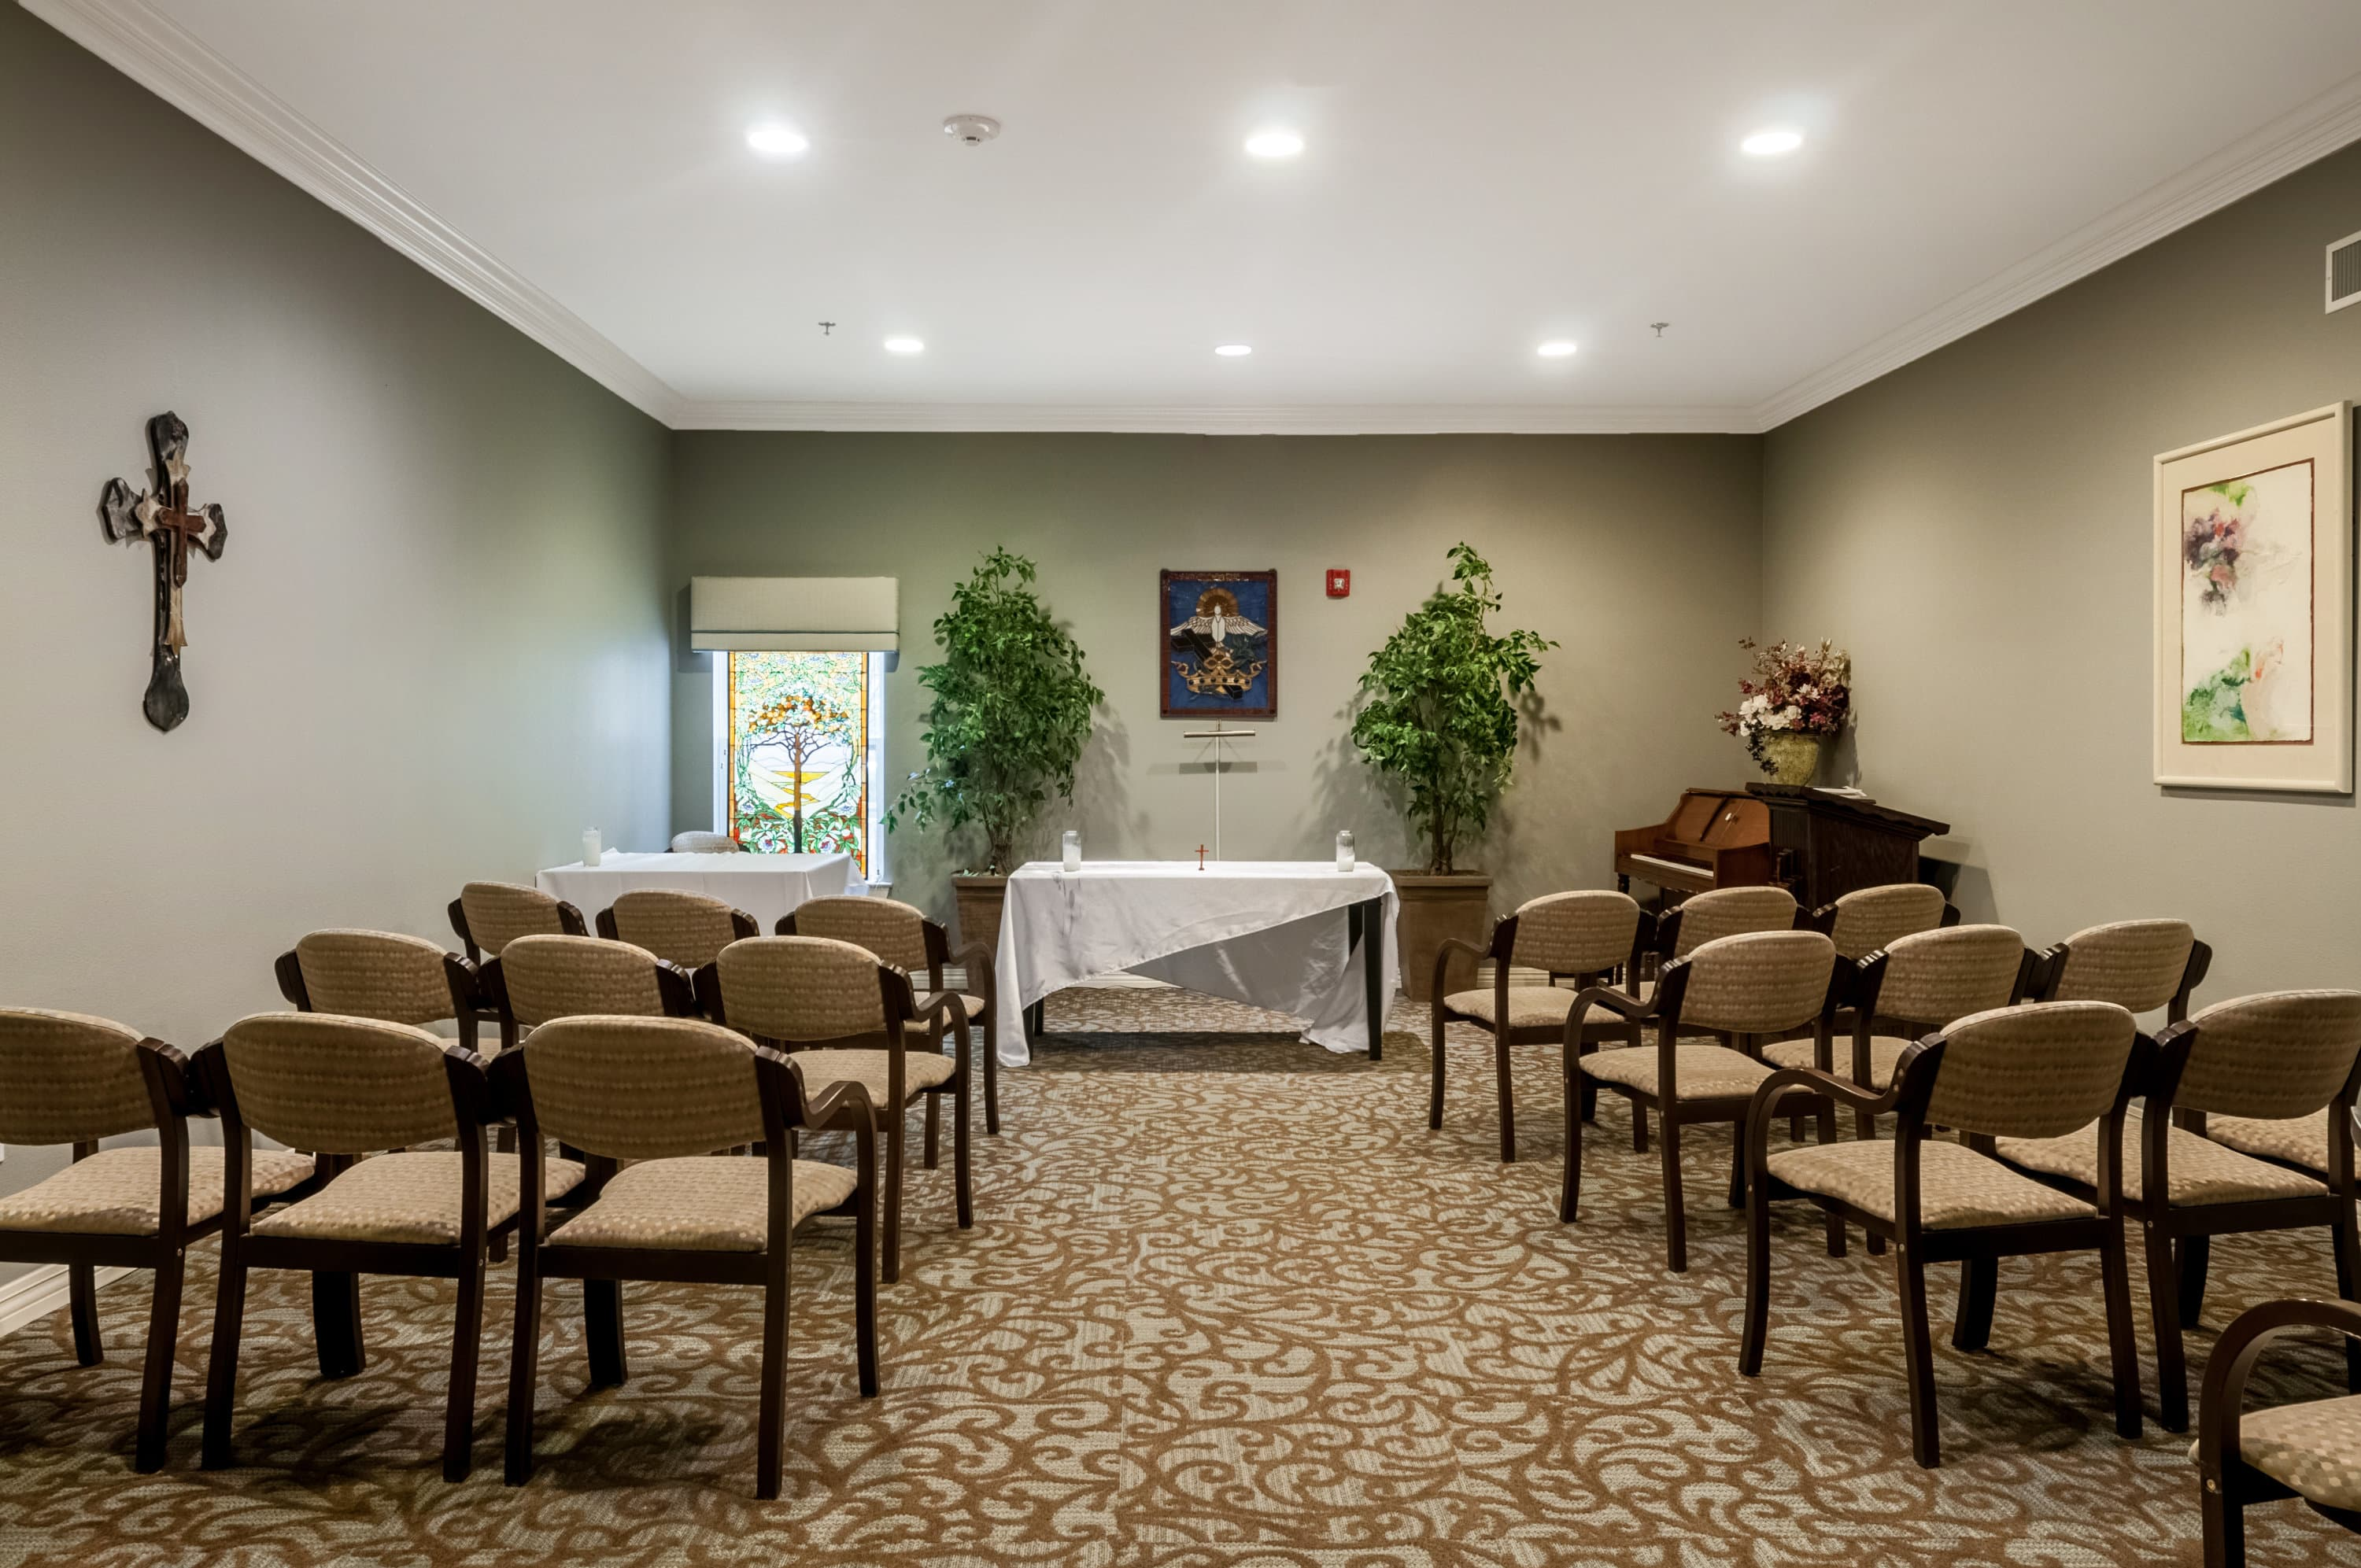 Church At Our Senior Living Home In Covington